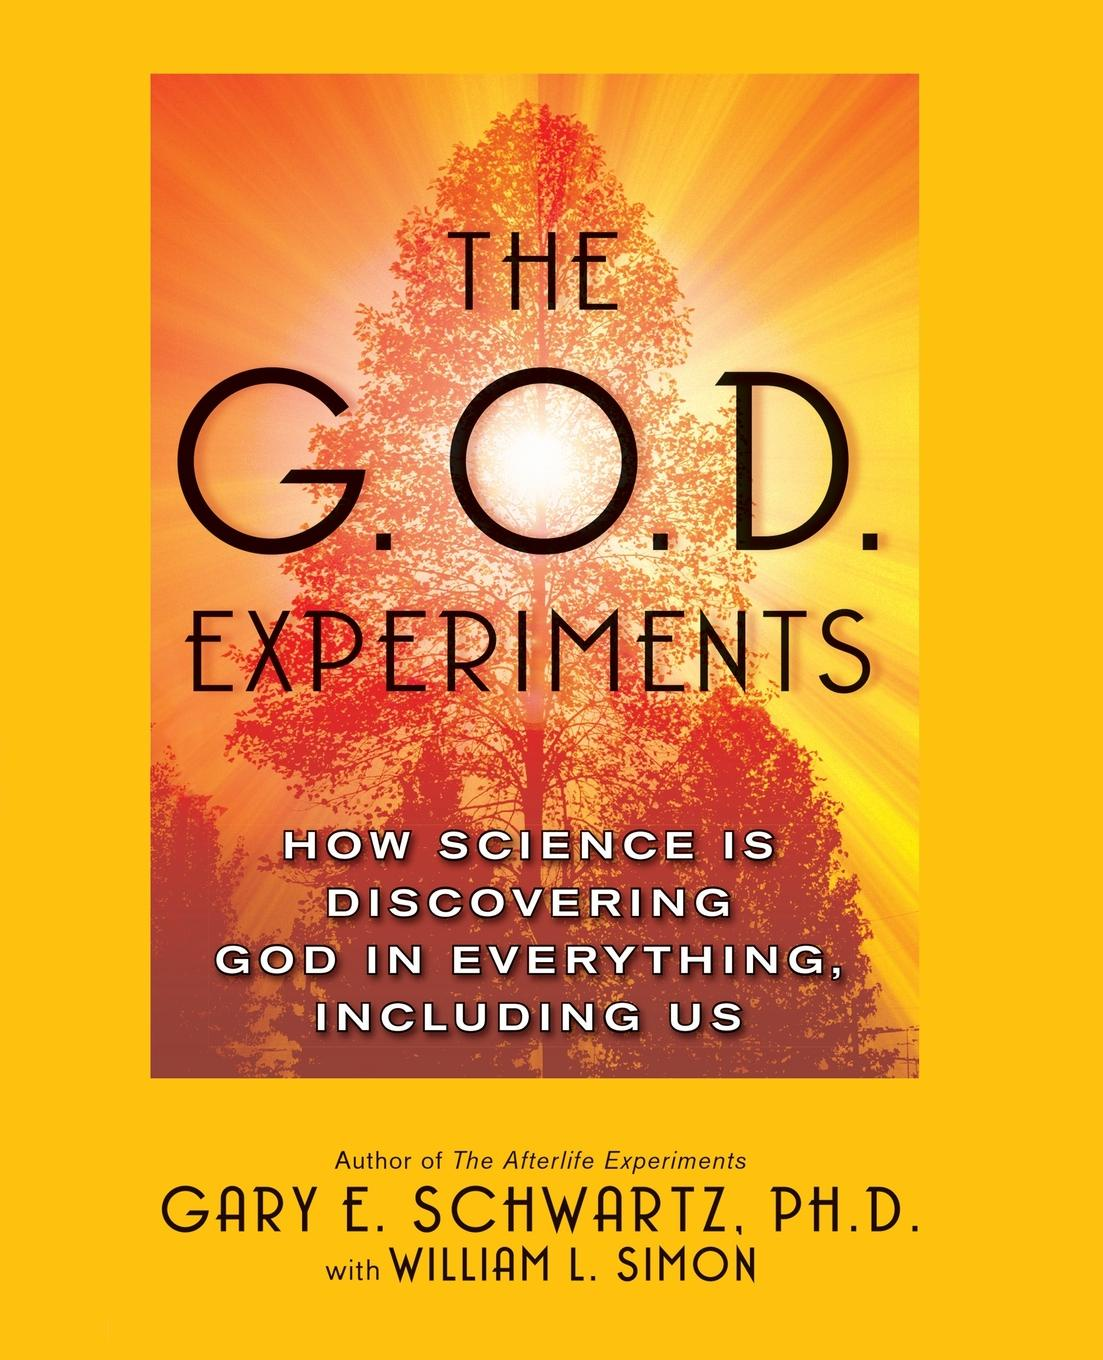 Gary E. Schwartz G.O.D. Experiments. How Science Is Discovering God in Everything, Including Us shadonna walker pearls class discovering god s beauty